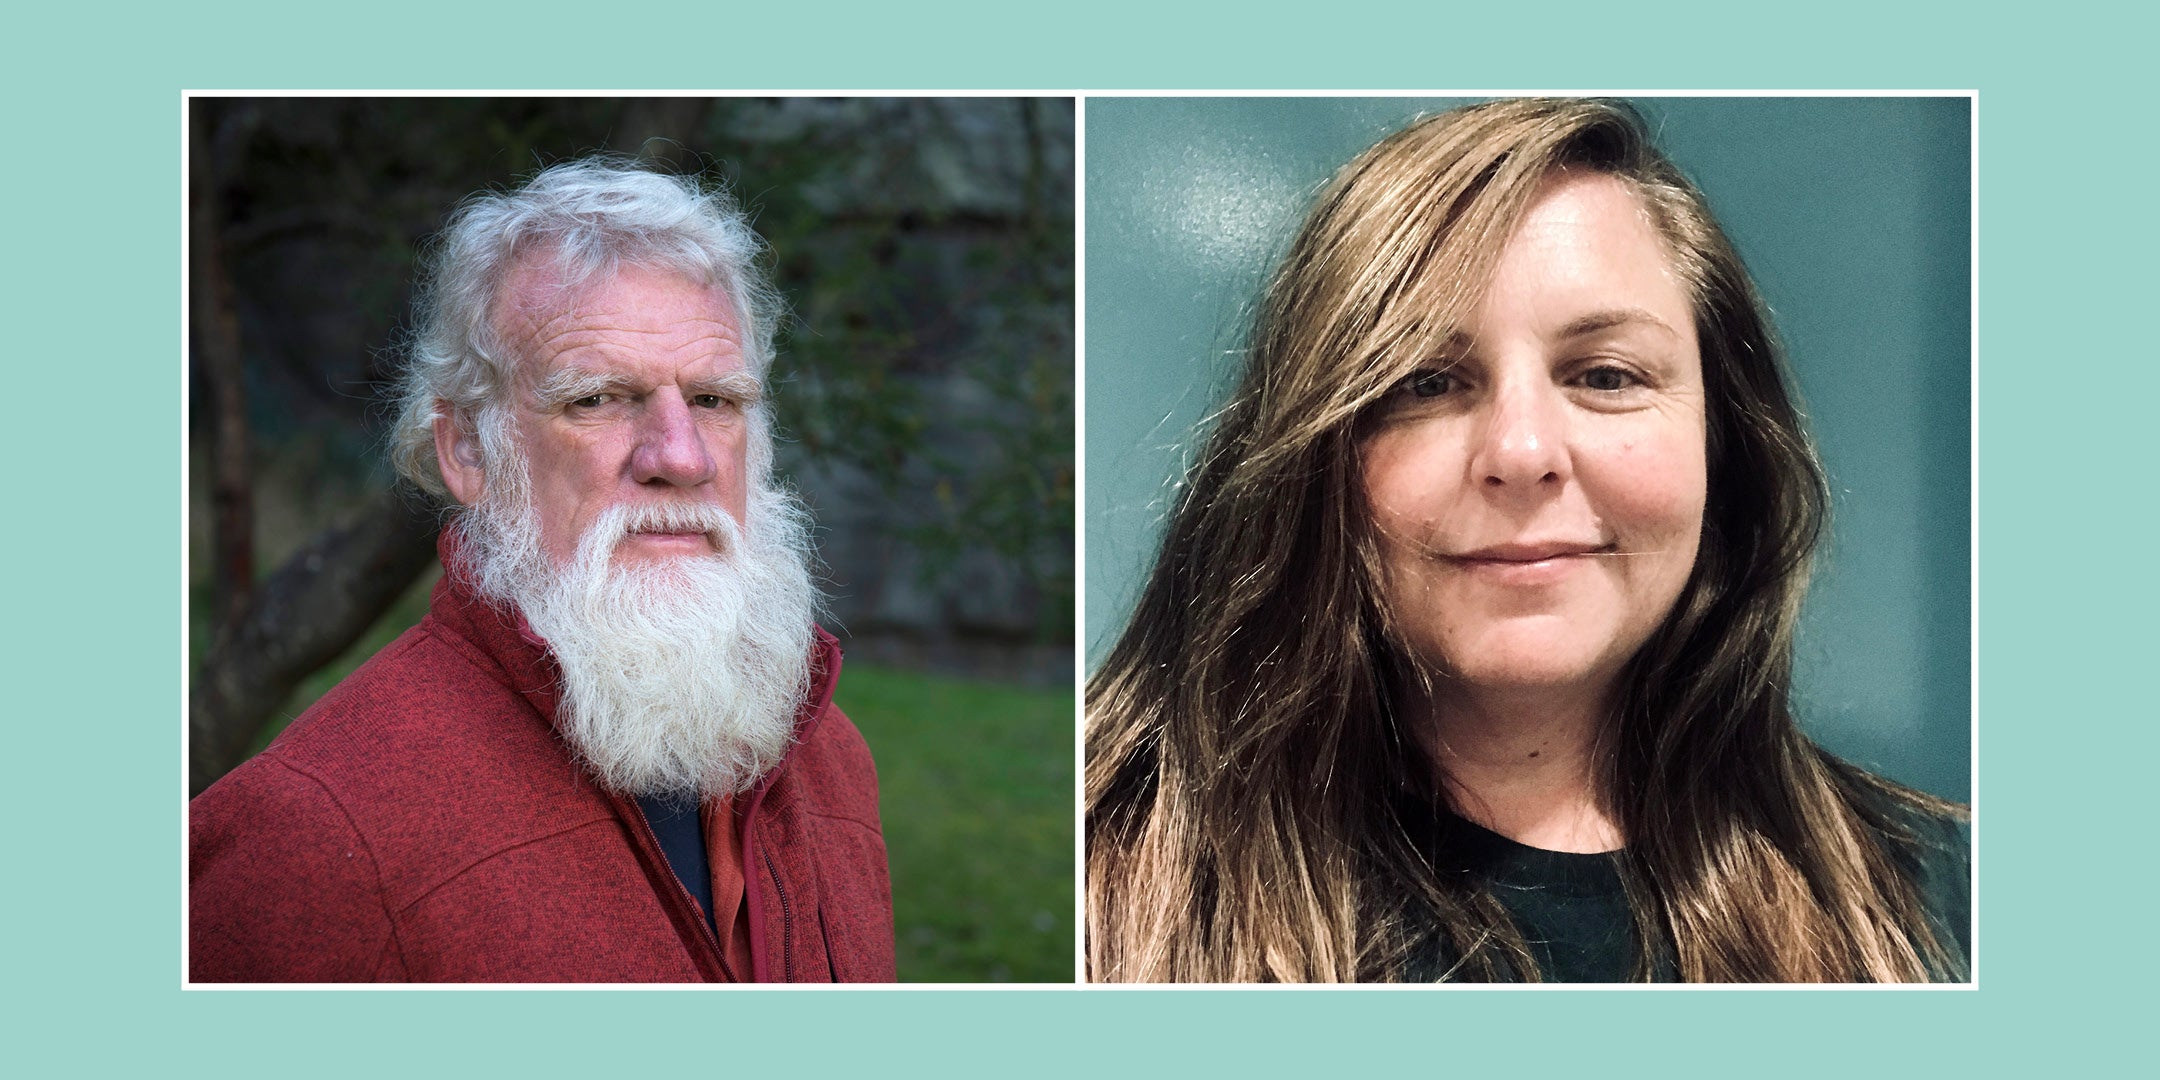 authors Bruce Pascoe and Jasmine Seymour headshots. Bruce wears a red jumper and Jasmine is smiling.